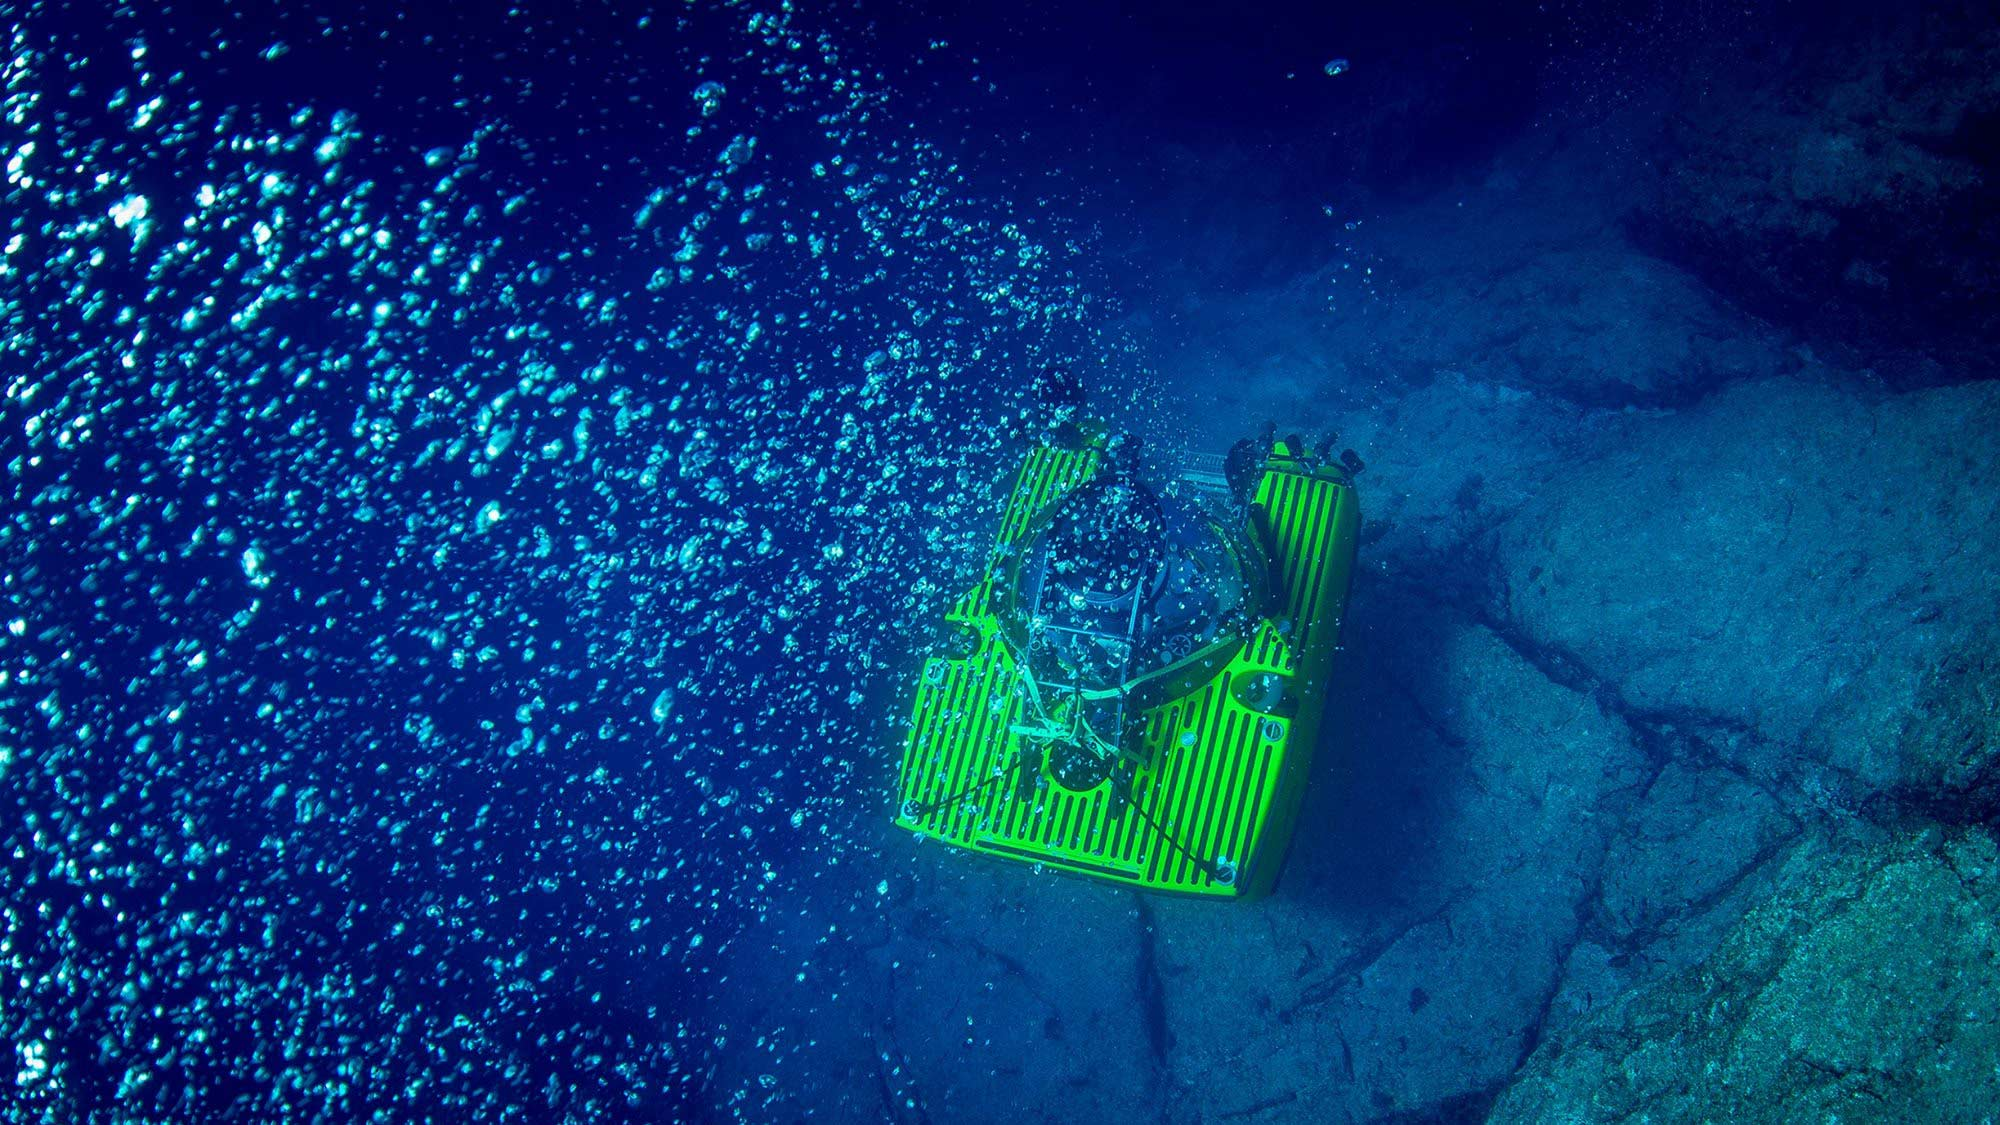 Triton sub sits on the seabed